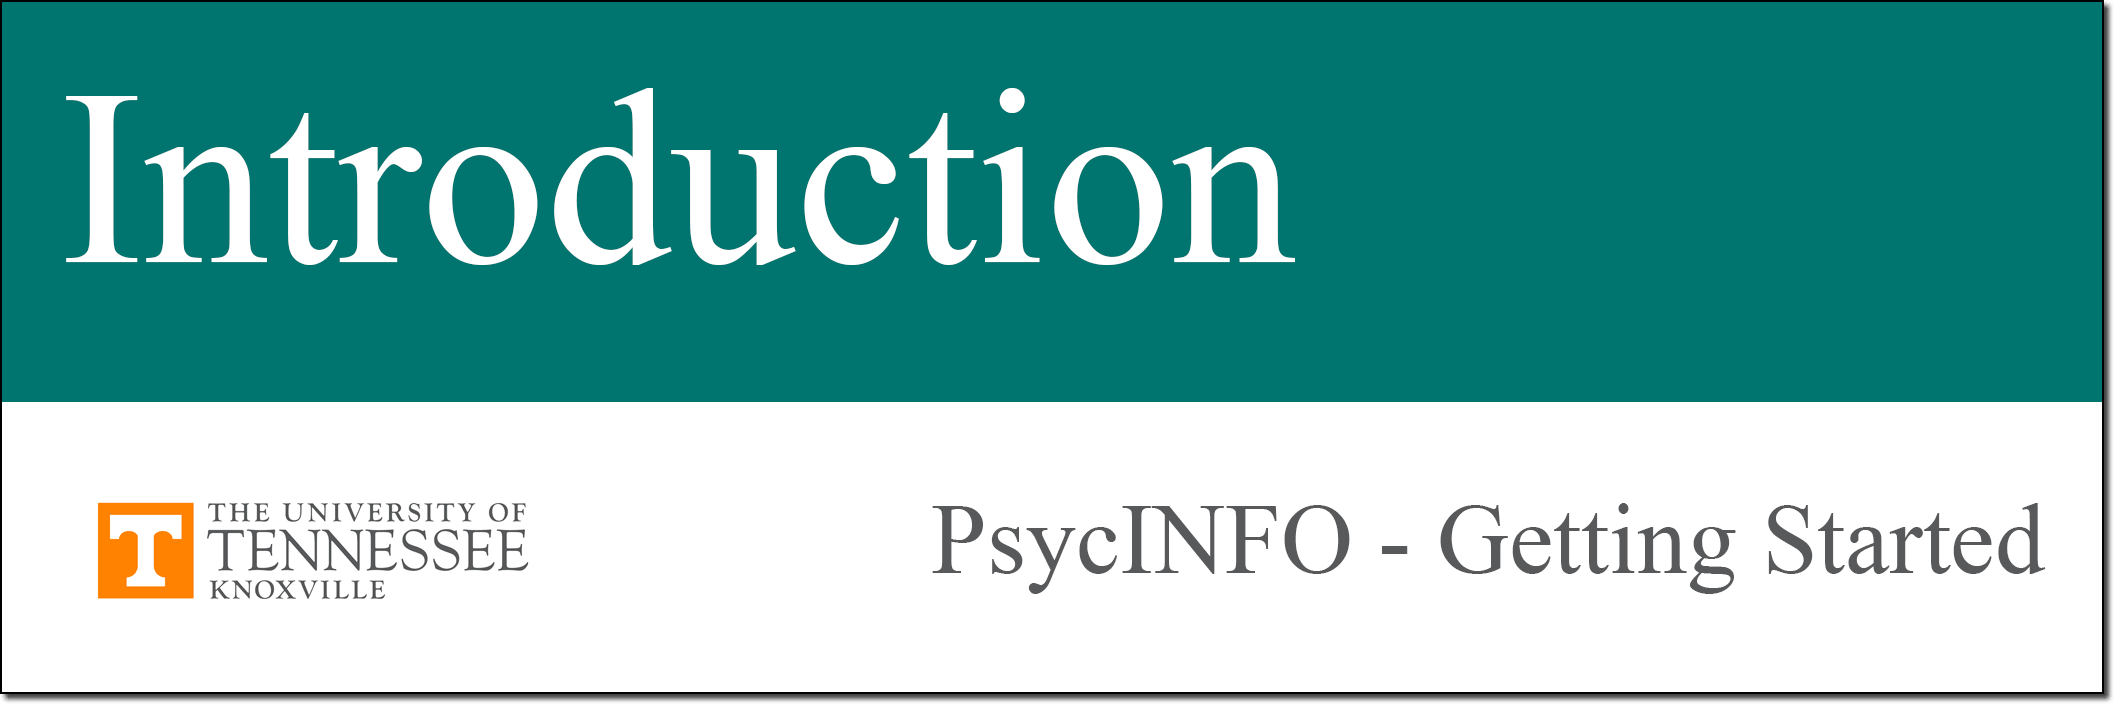 PsycINFO Tutorial Introduction link.